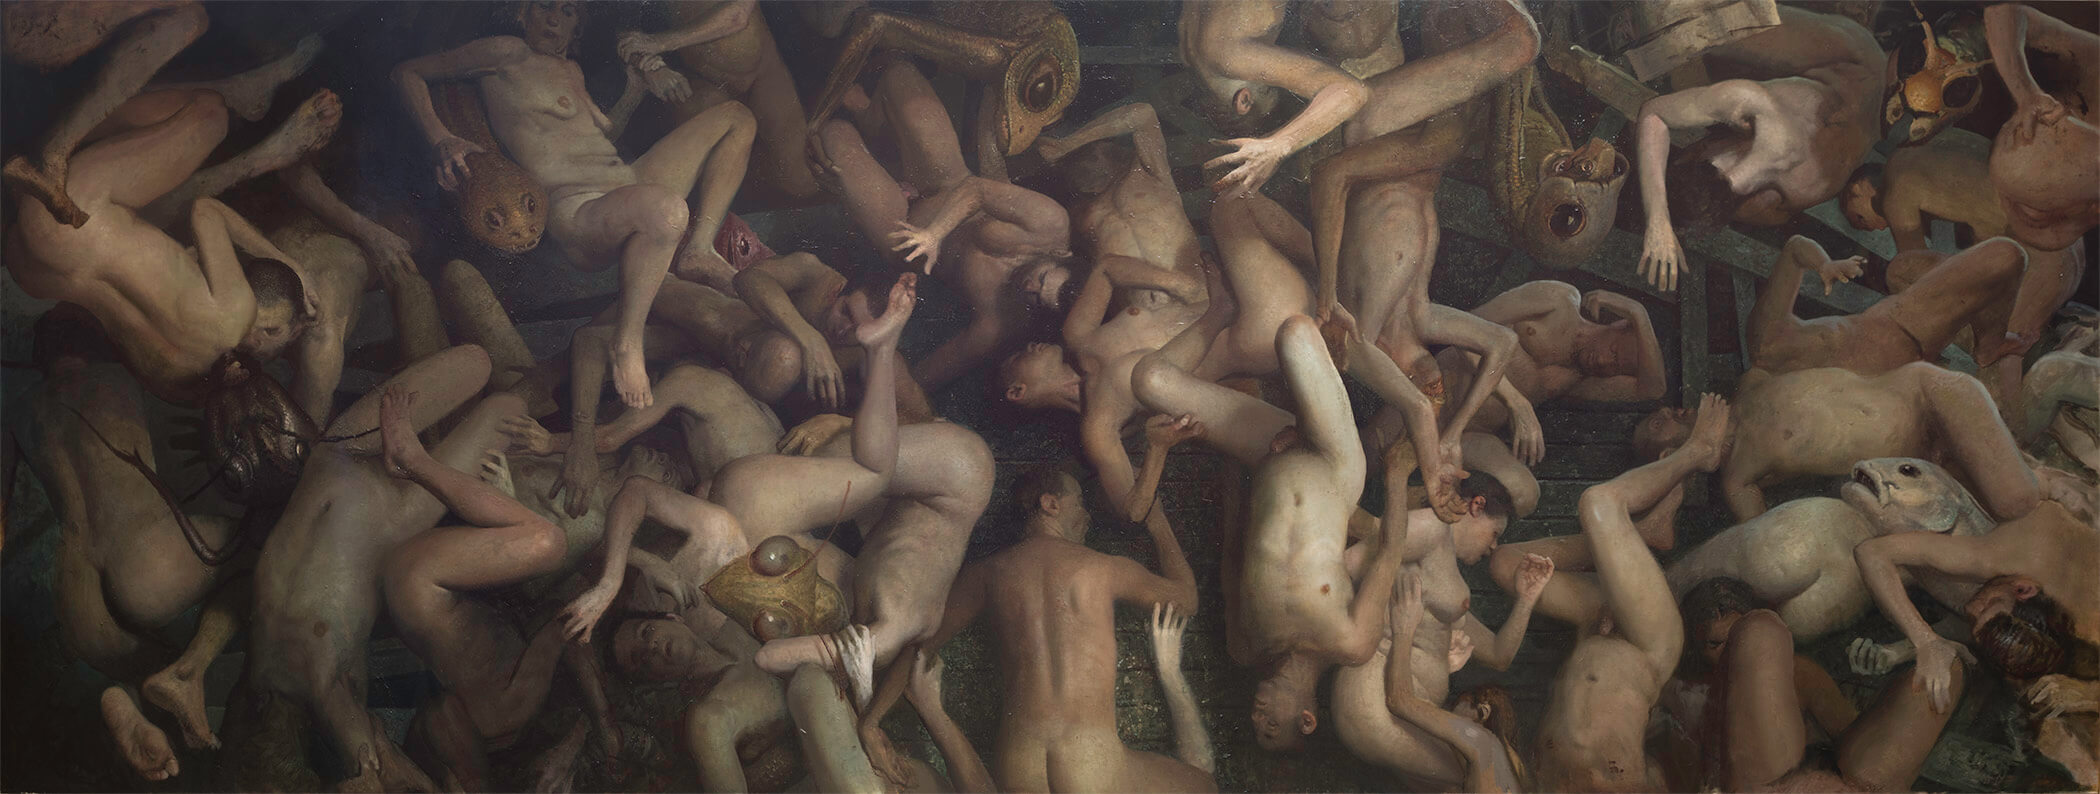 Vincent Desiderio, Theseus, 2017, oil on canvas, 62 x 164 inches (© Vincent Desiderio, courtesy Marlborough Gallery, New York)